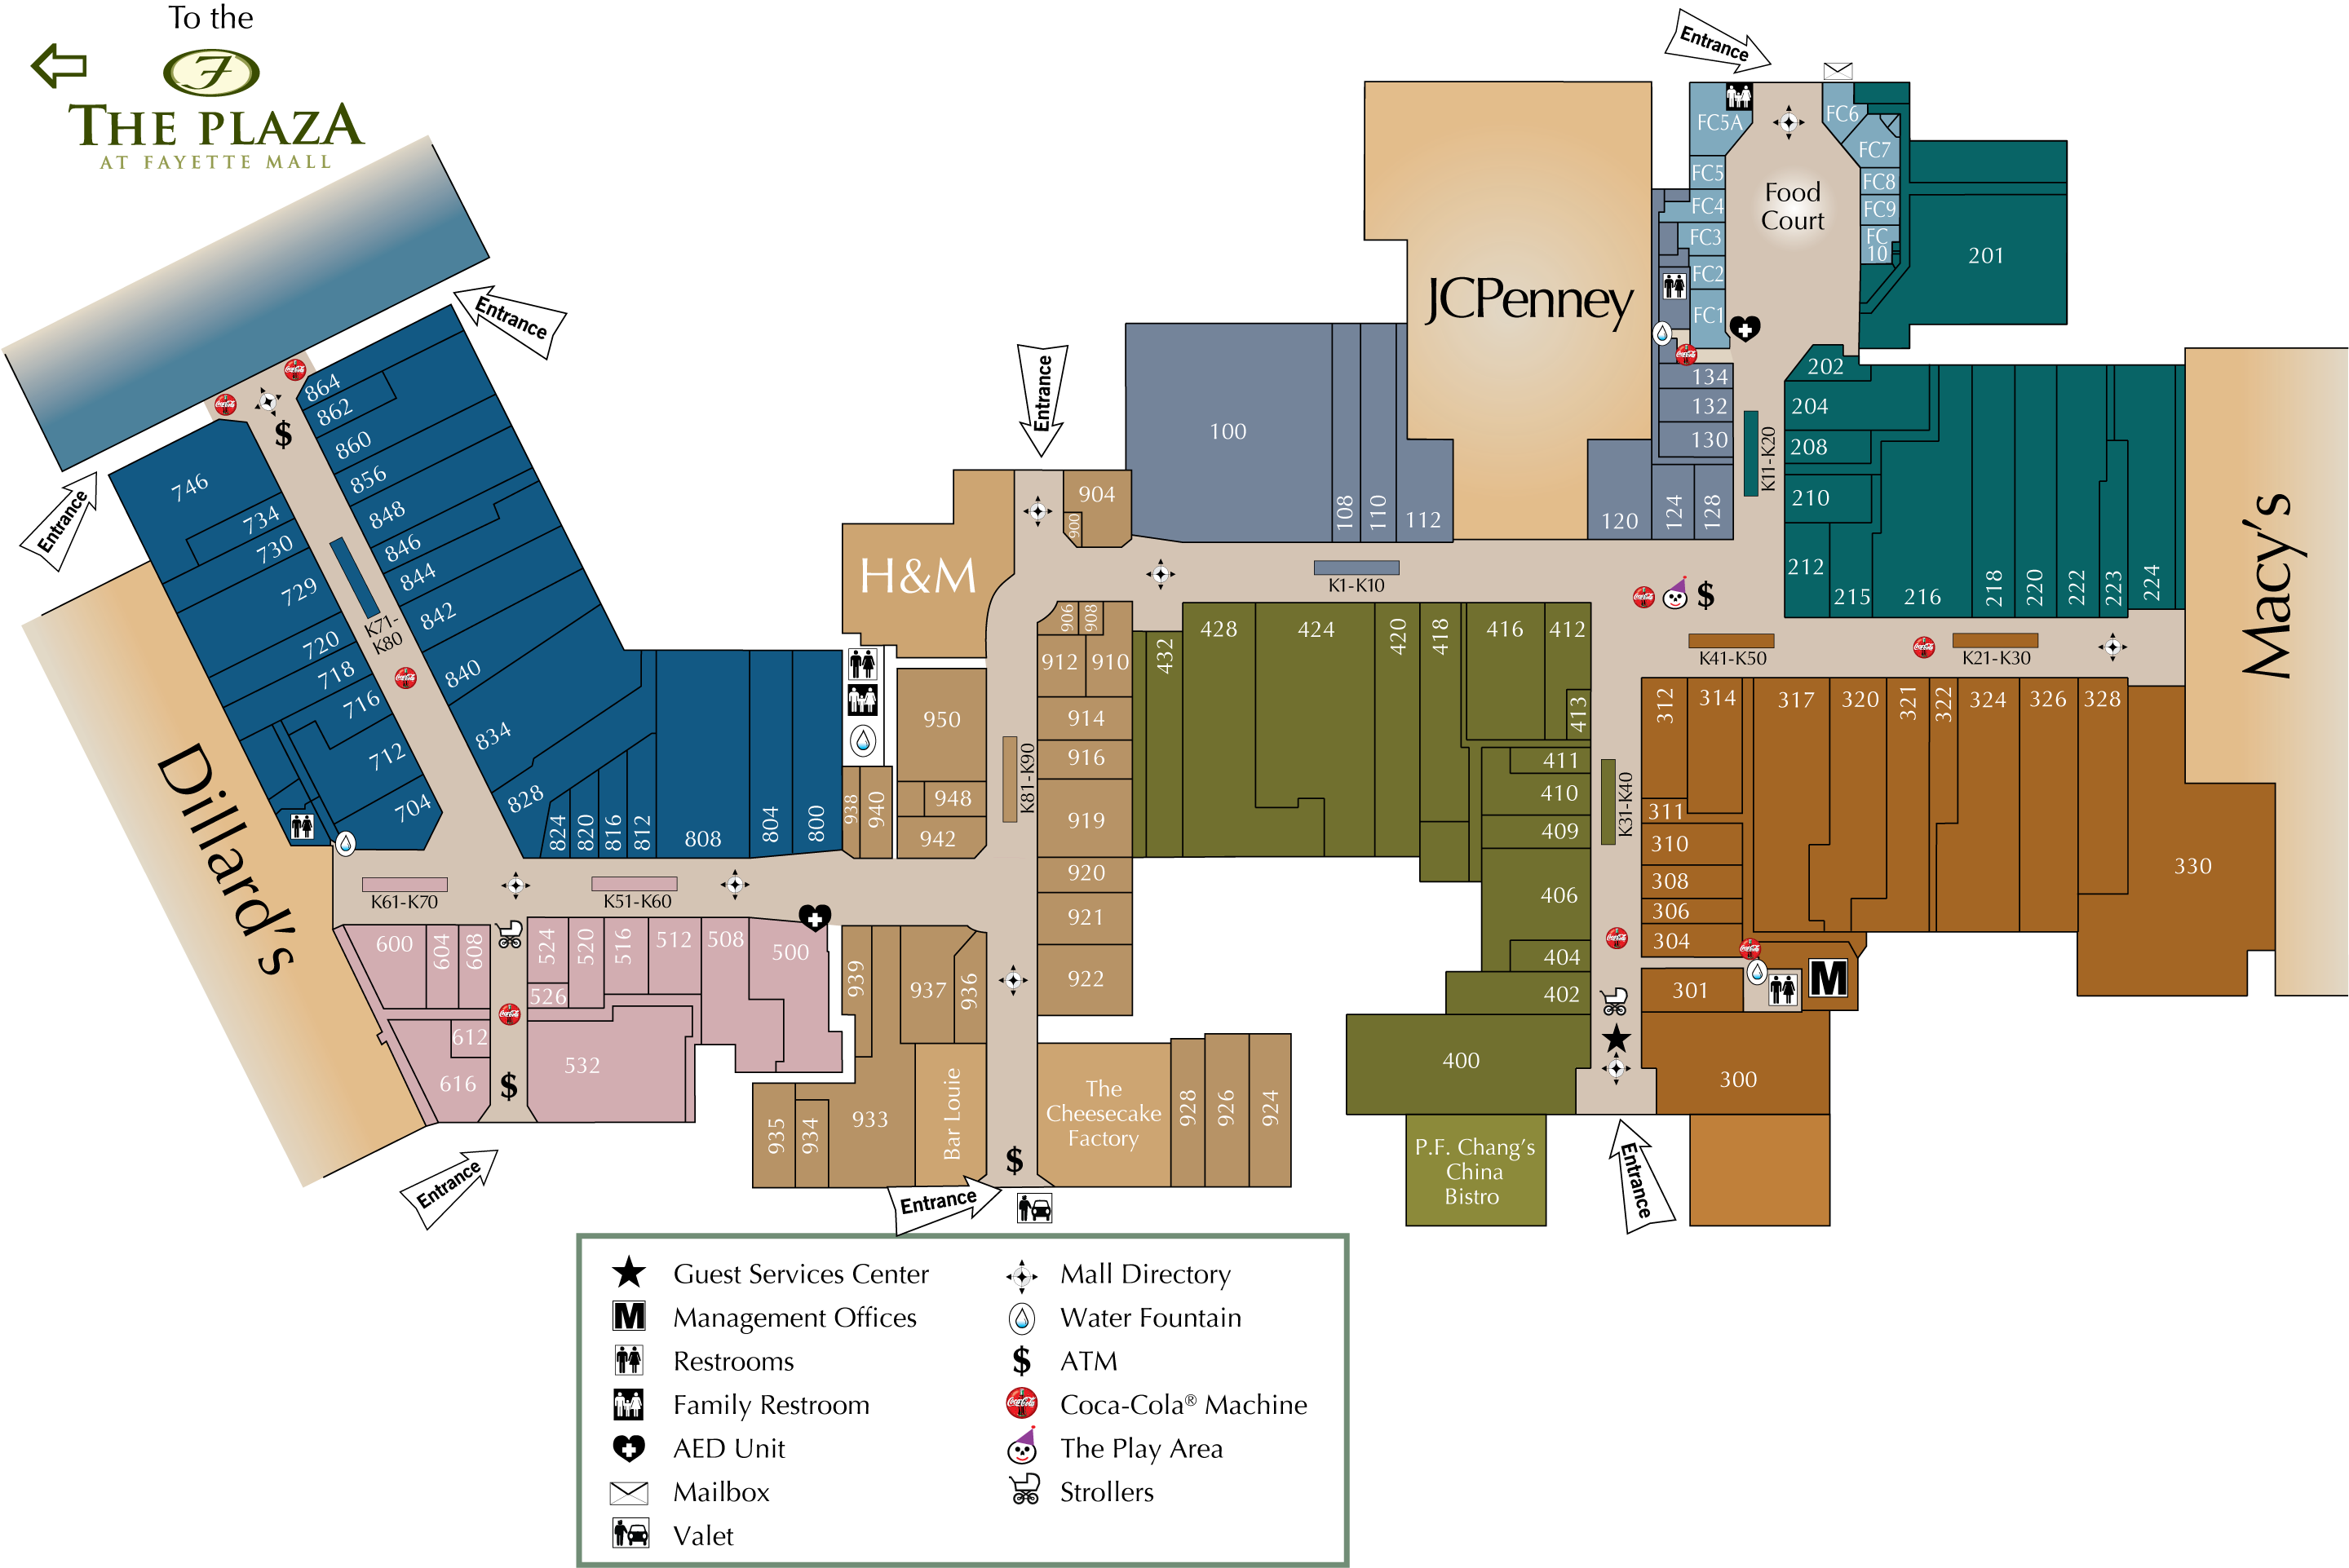 Garden State Plaza Directory Map